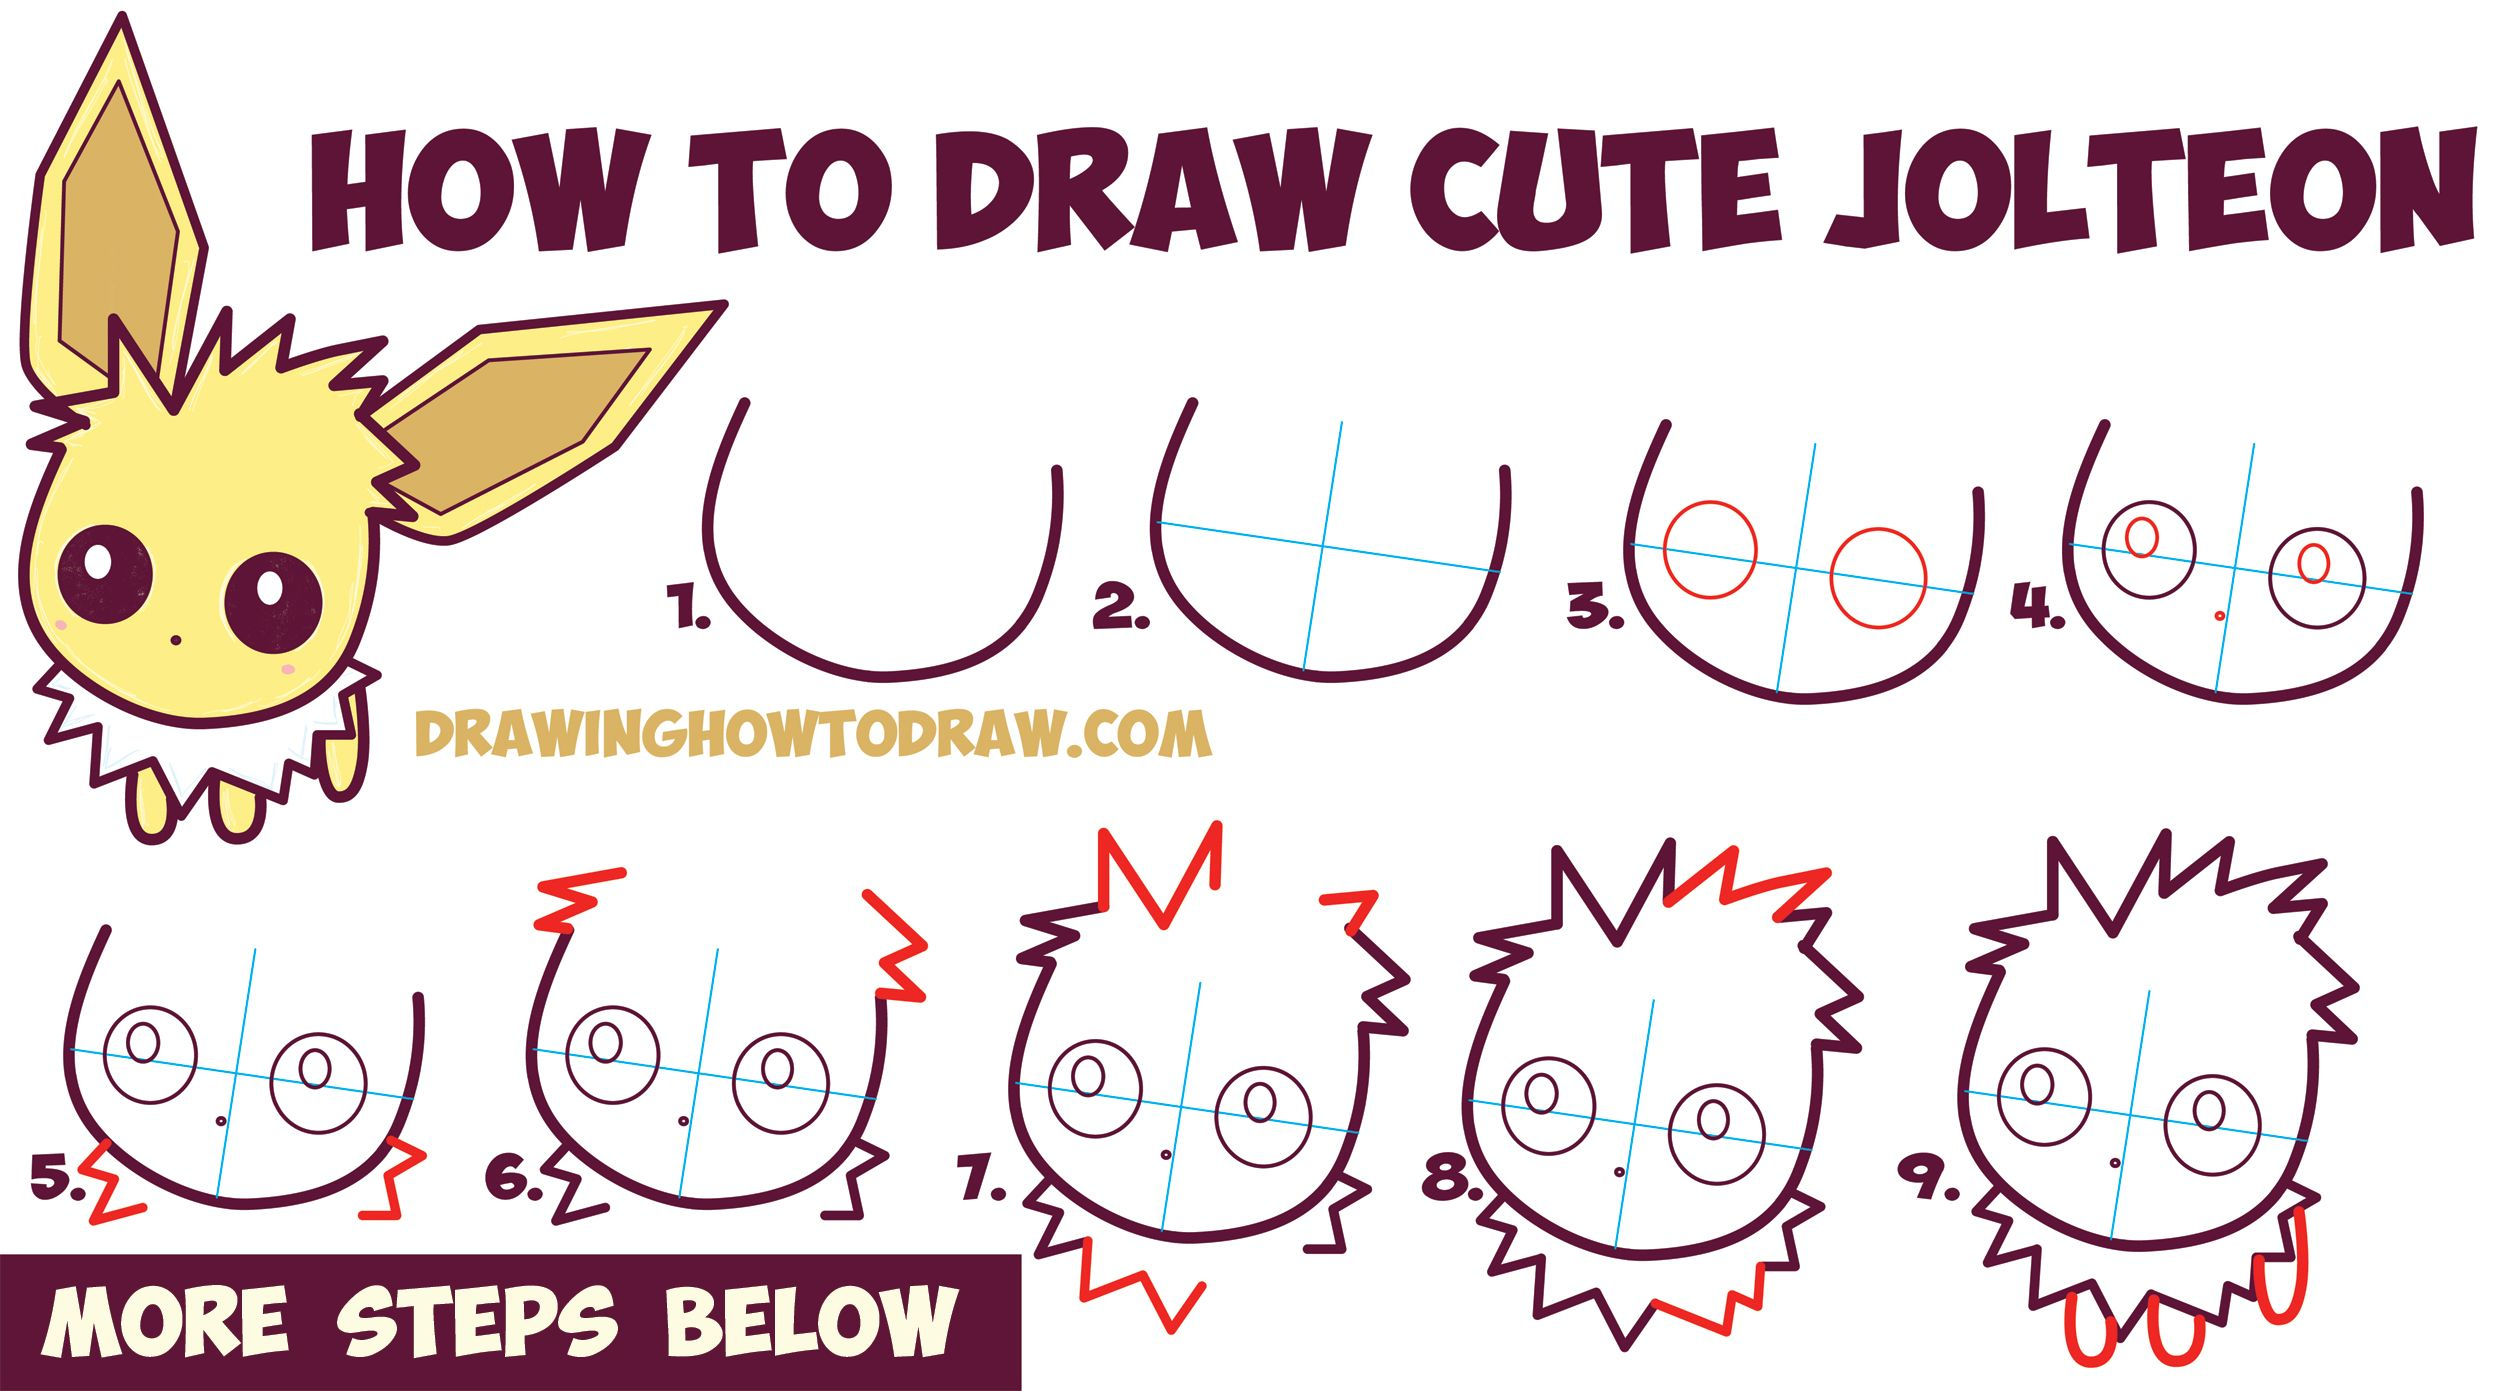 How To Draw Cute Kawaii Chibi Jolteon From Pokemon Easy Step By Step Drawing Tutorial For Kids How To Draw Step By Step Drawing Tutorials Drawing Tutorials For